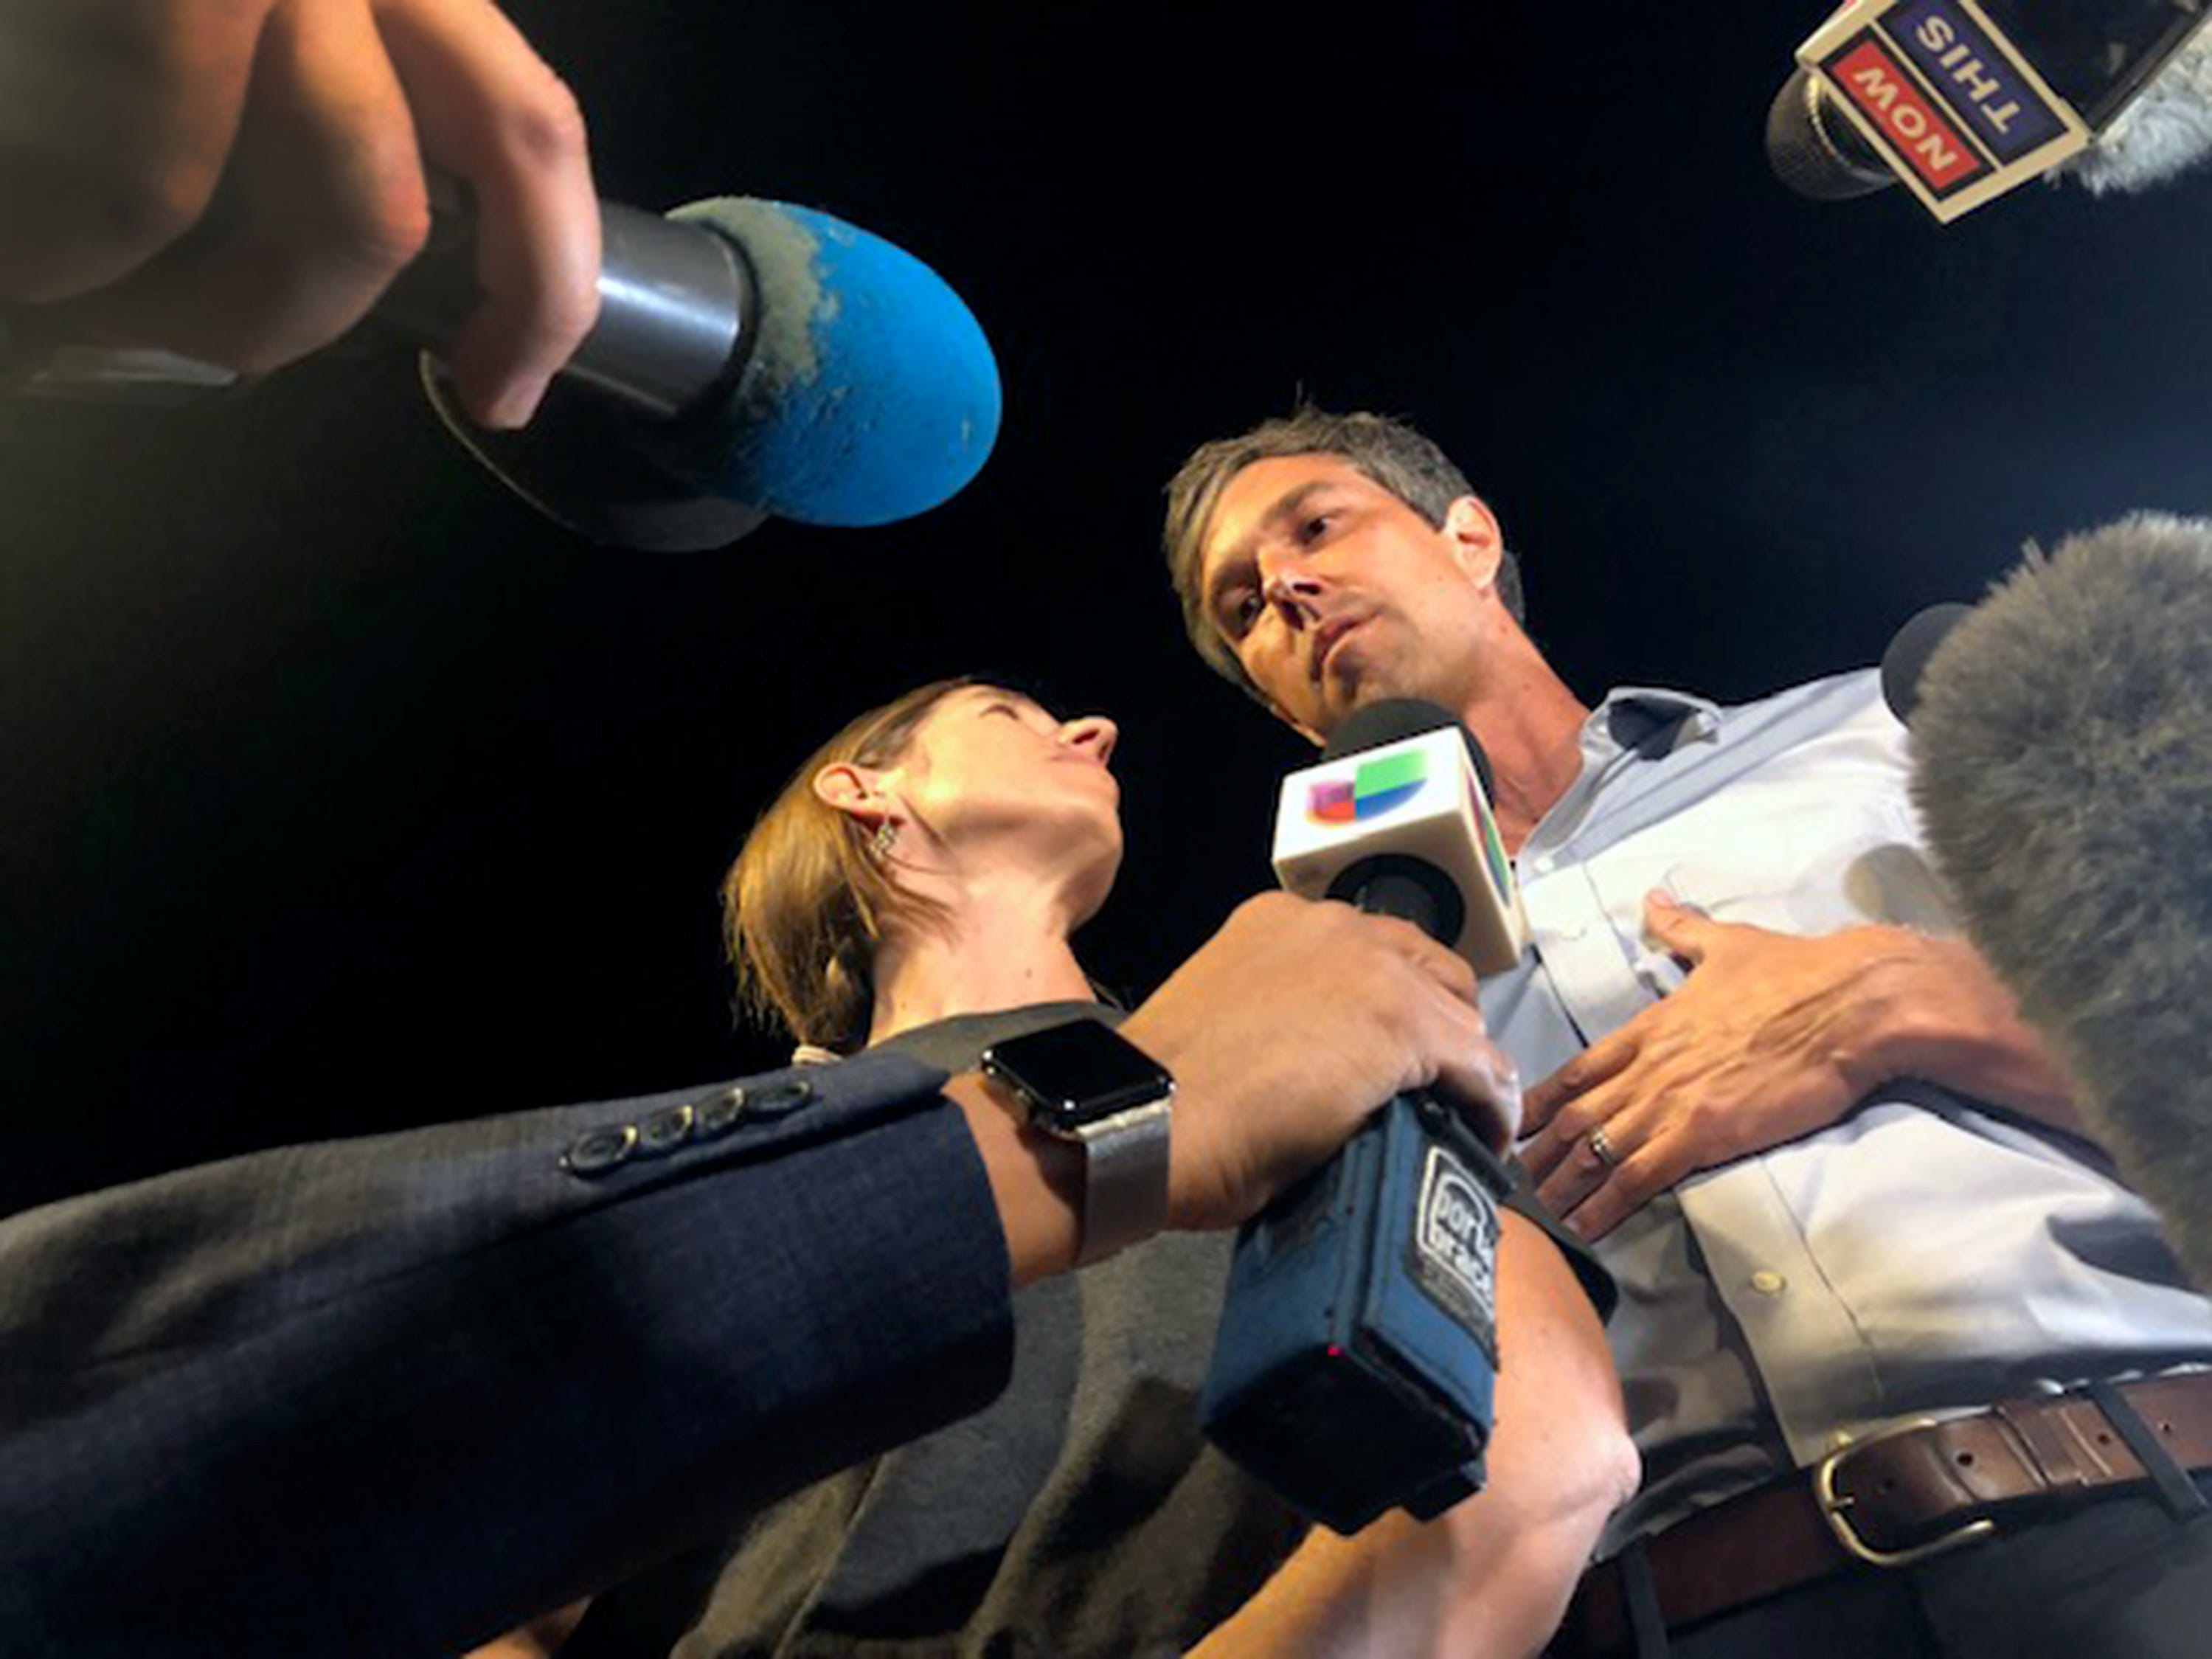 Democratic U.S. Senate candidate Beto O'Rourke and his wife Amy O'Rourke meet the media upon their arrival at Magoffin Auditorium on the UTEP campus Monday night.